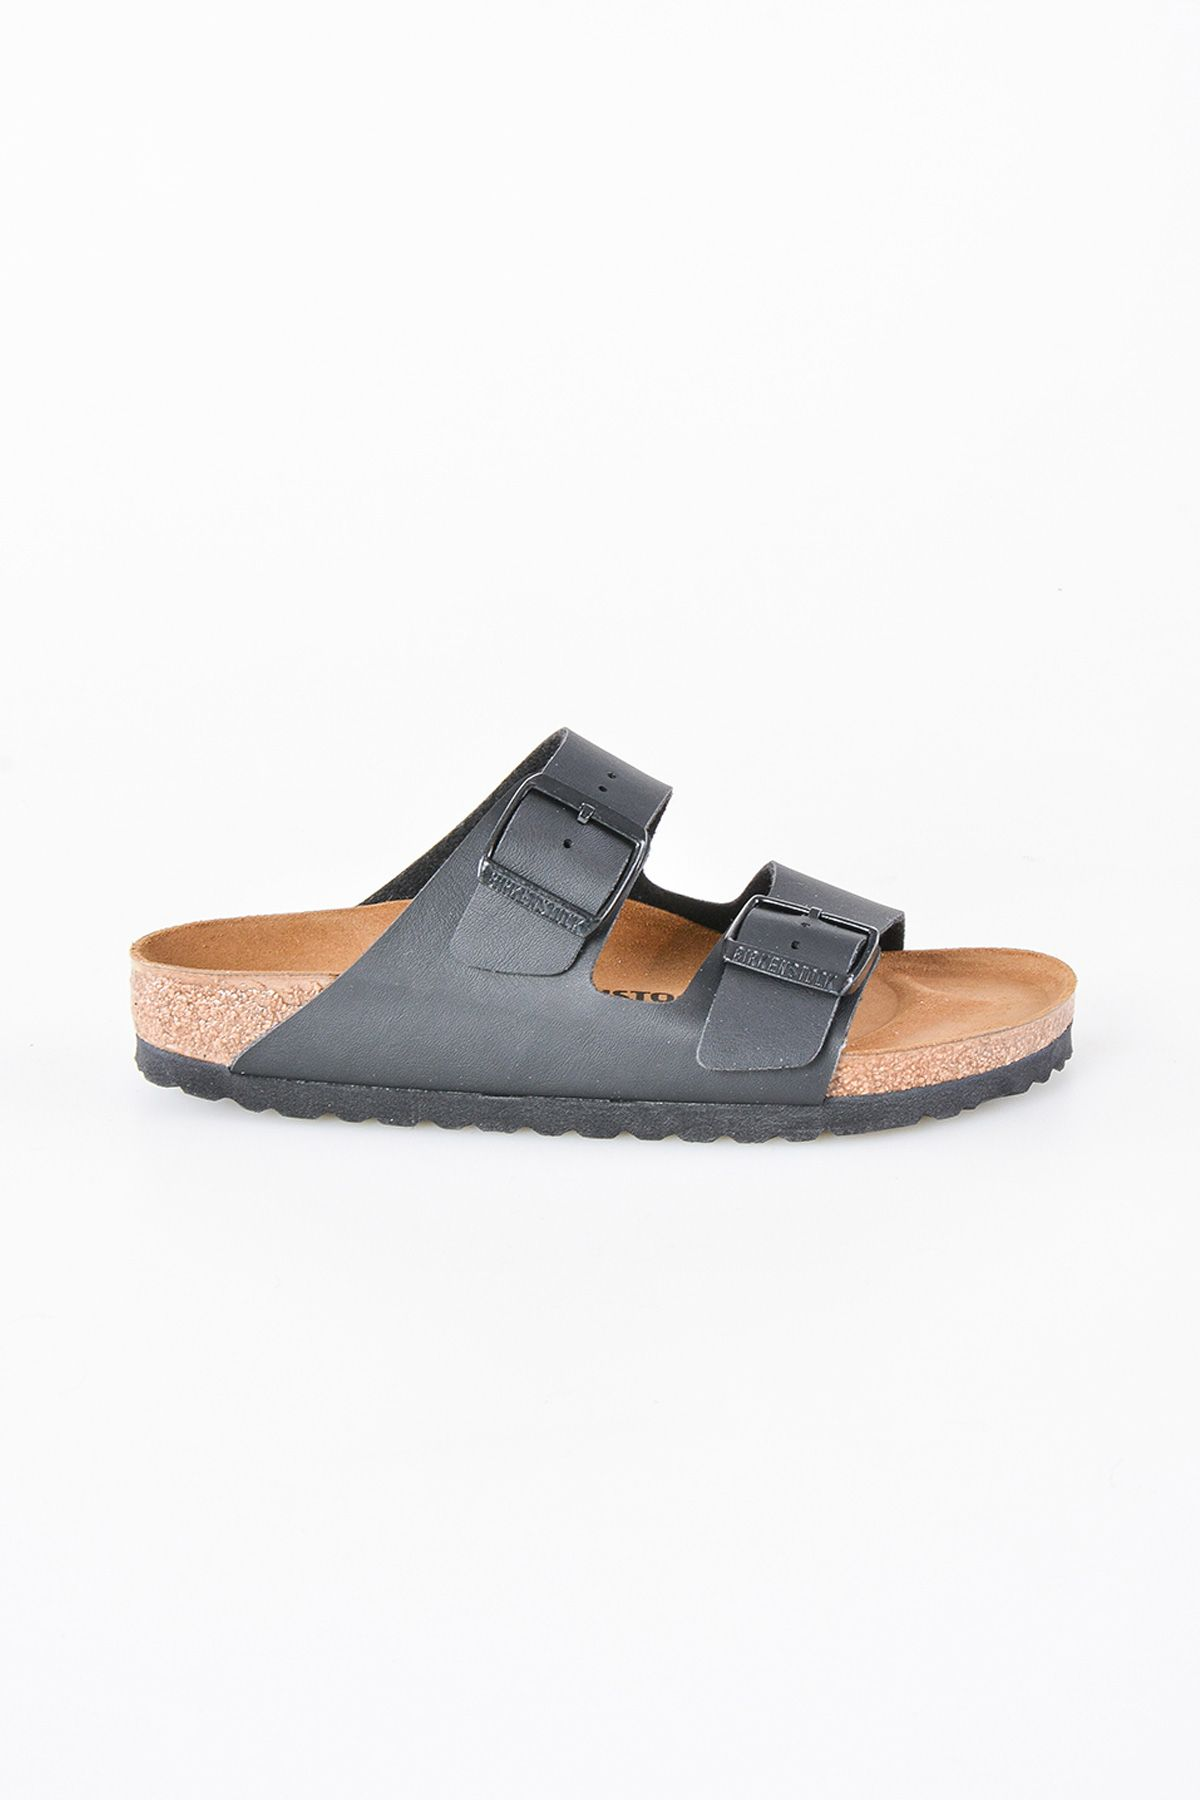 Birkenstock Arizona BS Genuine Leather Women's Summer Slippers 0051793 Black